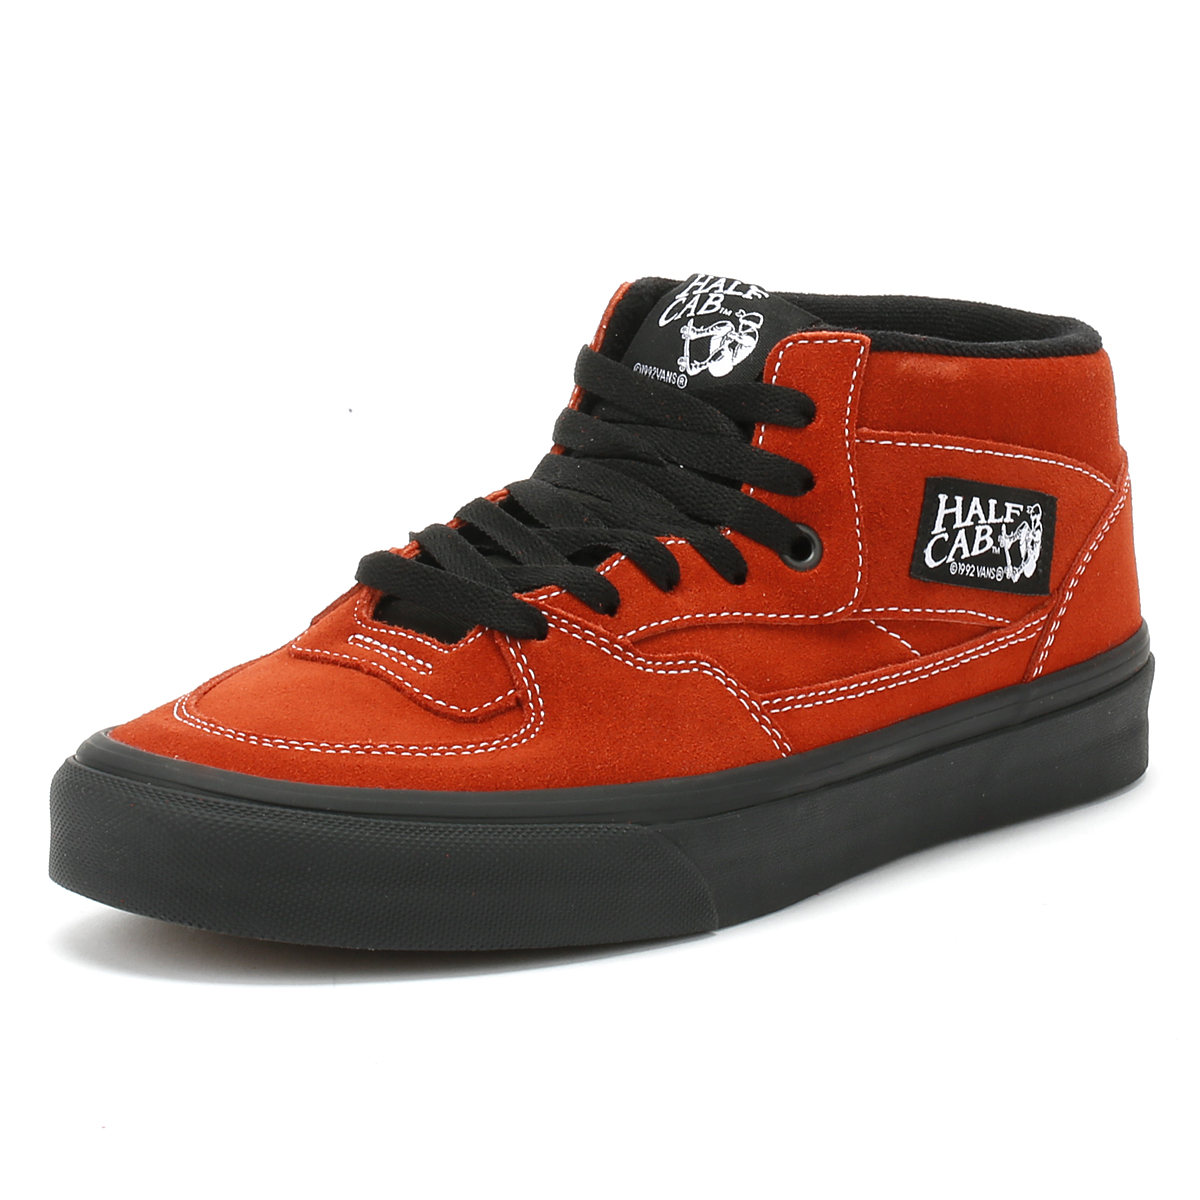 6d4730443daac5 Details about Vans Mens Trainers Bossa Nova Red   Black Half Cab Sport Skate  Shoes